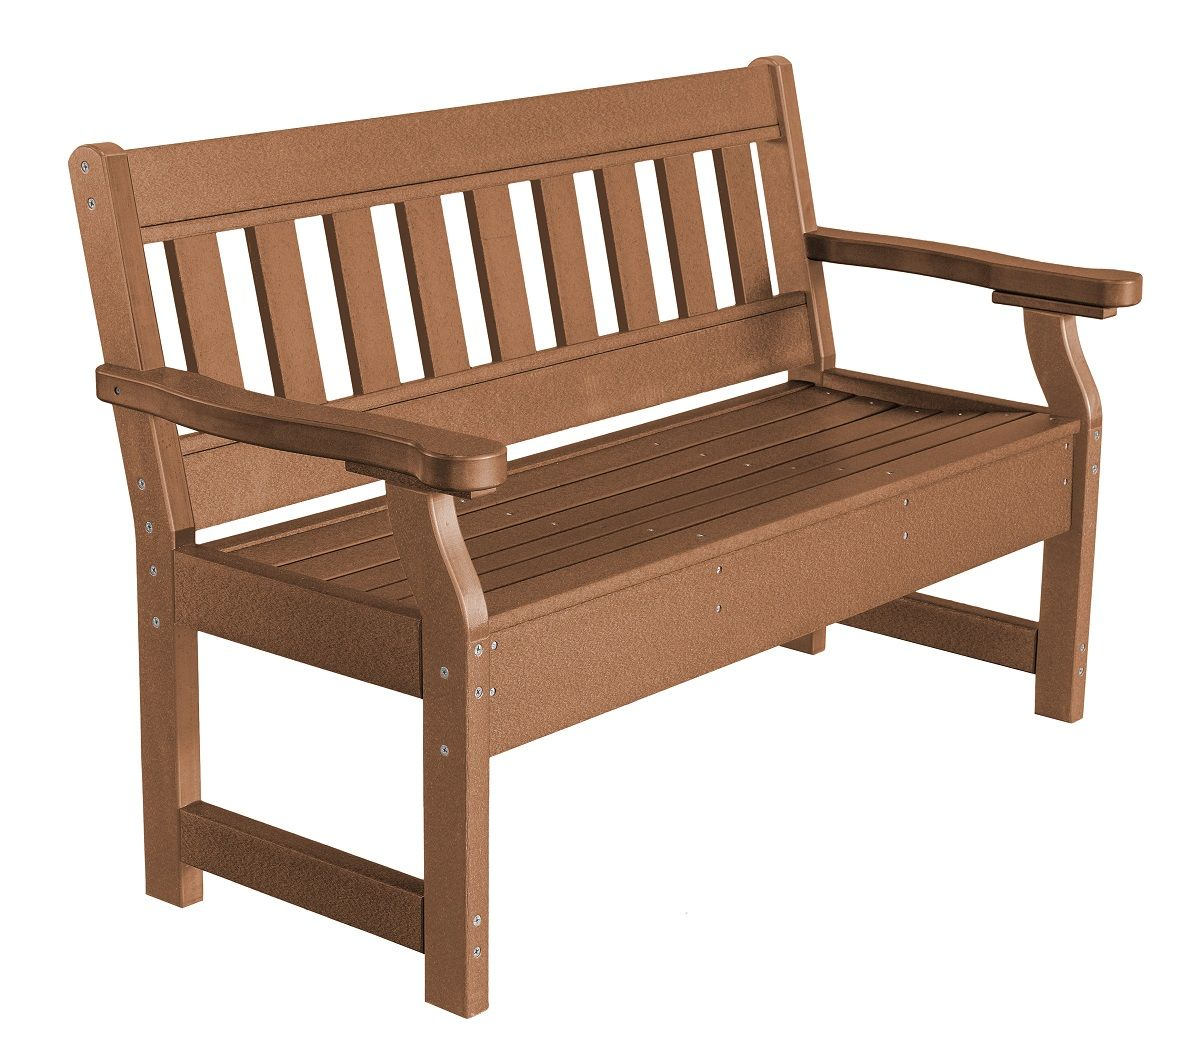 Tudor Brown Aden Garden Bench